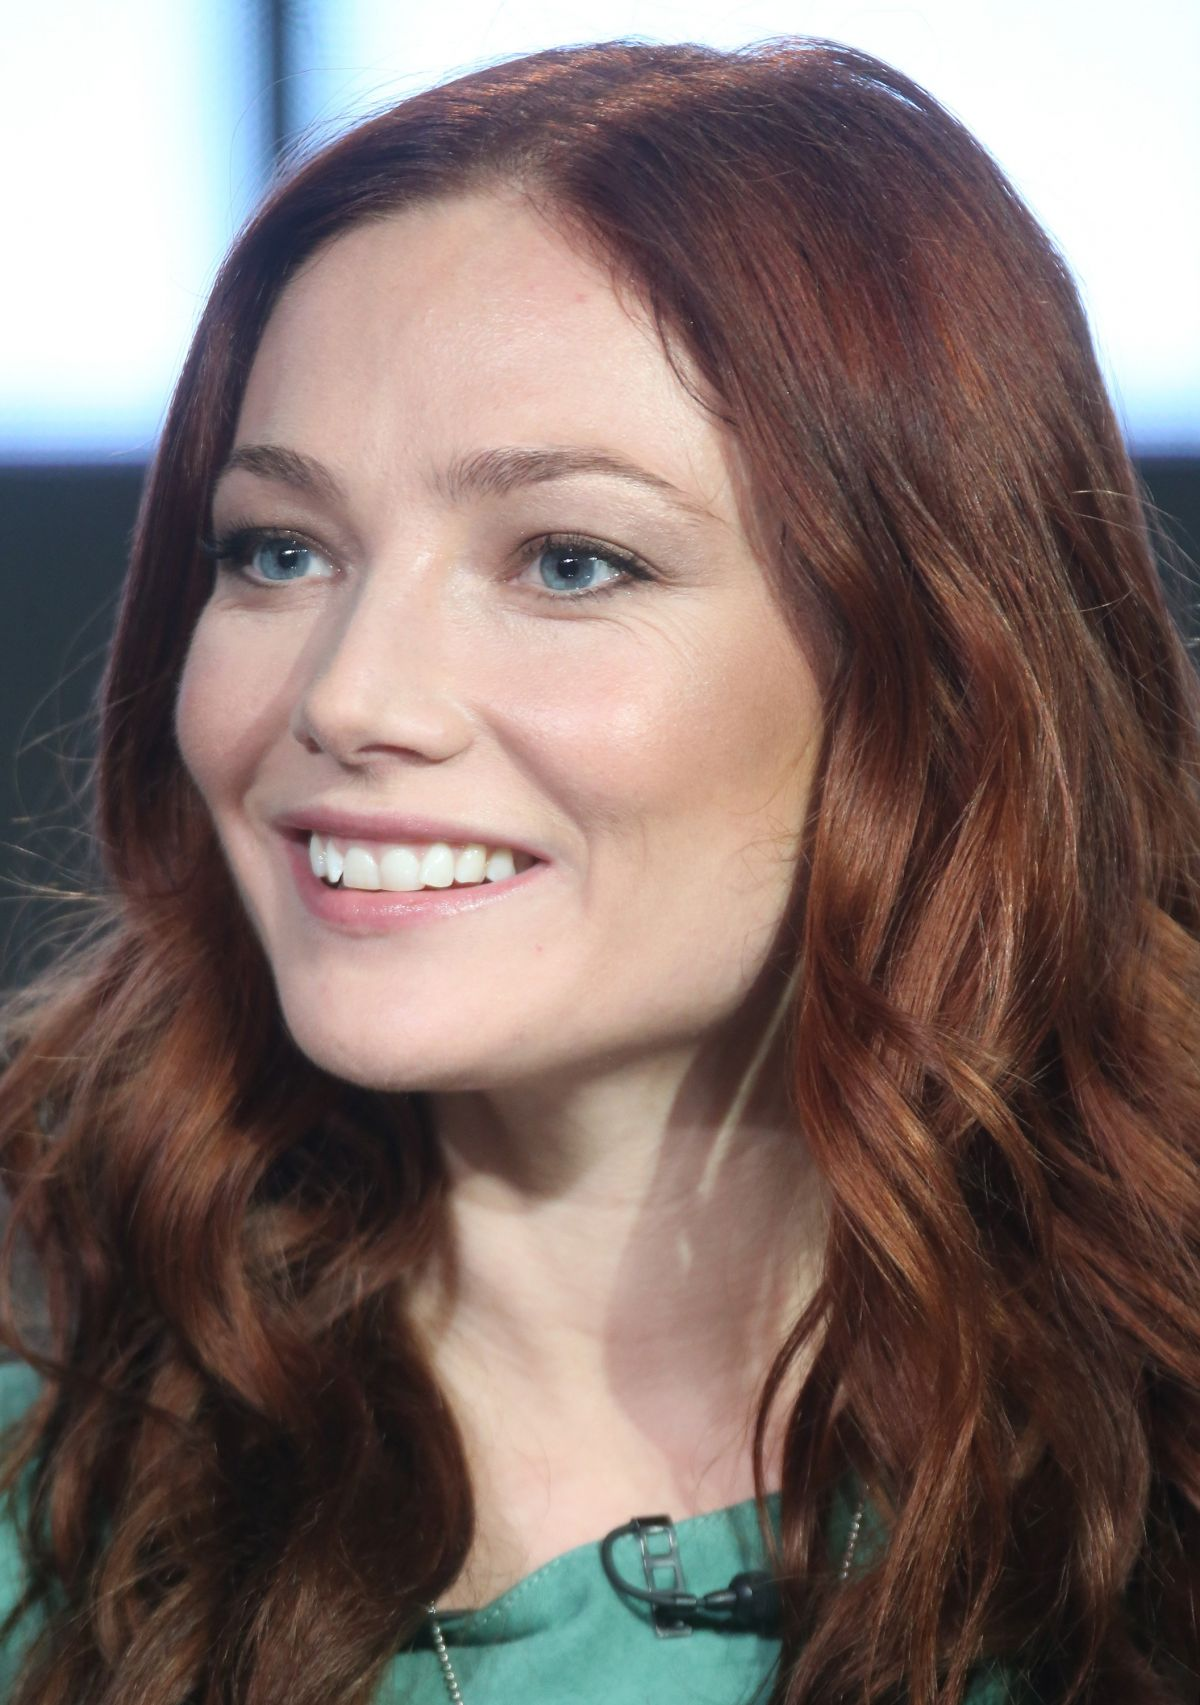 clara paget tumblrclara paget instagram, clara paget anne bonny, clara paget photoshoot, clara paget twitter, clara paget married, clara paget fansite, clara paget photos, clara paget wallpaper, clara paget facebook, clara paget, clara paget wiki, clara paget photo gallery, clara paget boyfriend, clara paget height, clara paget interview, clara paget images, clara paget tumblr, clara paget fast and furious, clara paget jessica parker kennedy